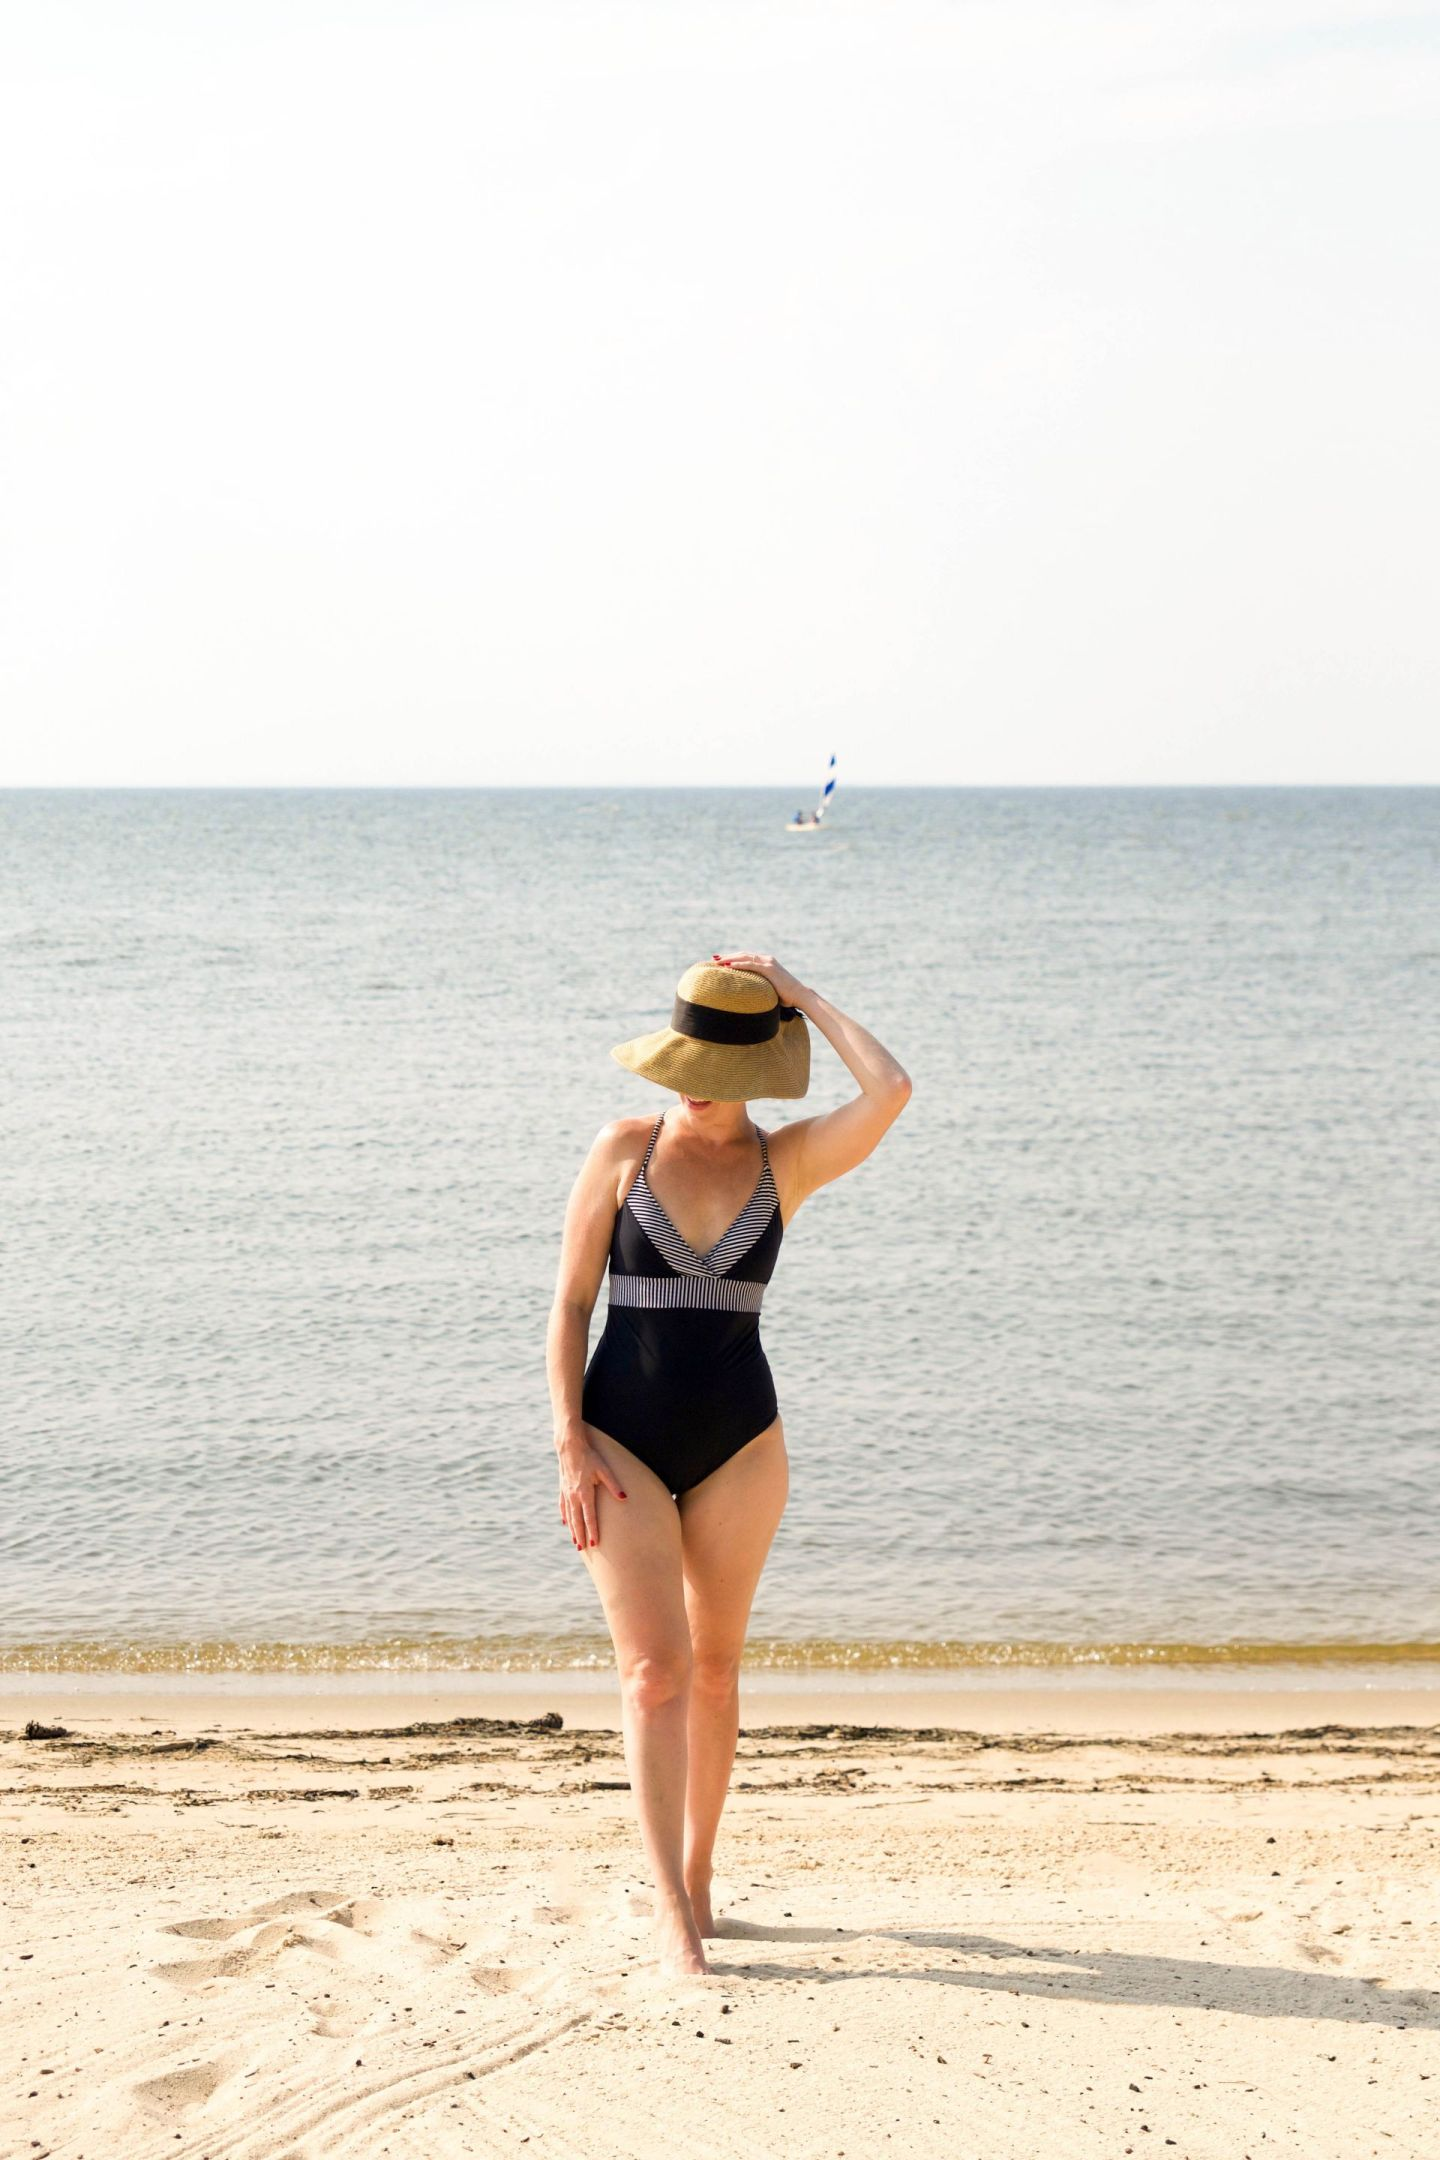 vineyard vines sconset bathing suit - flattering one-piece swimsuit - tuckernuck packable hat